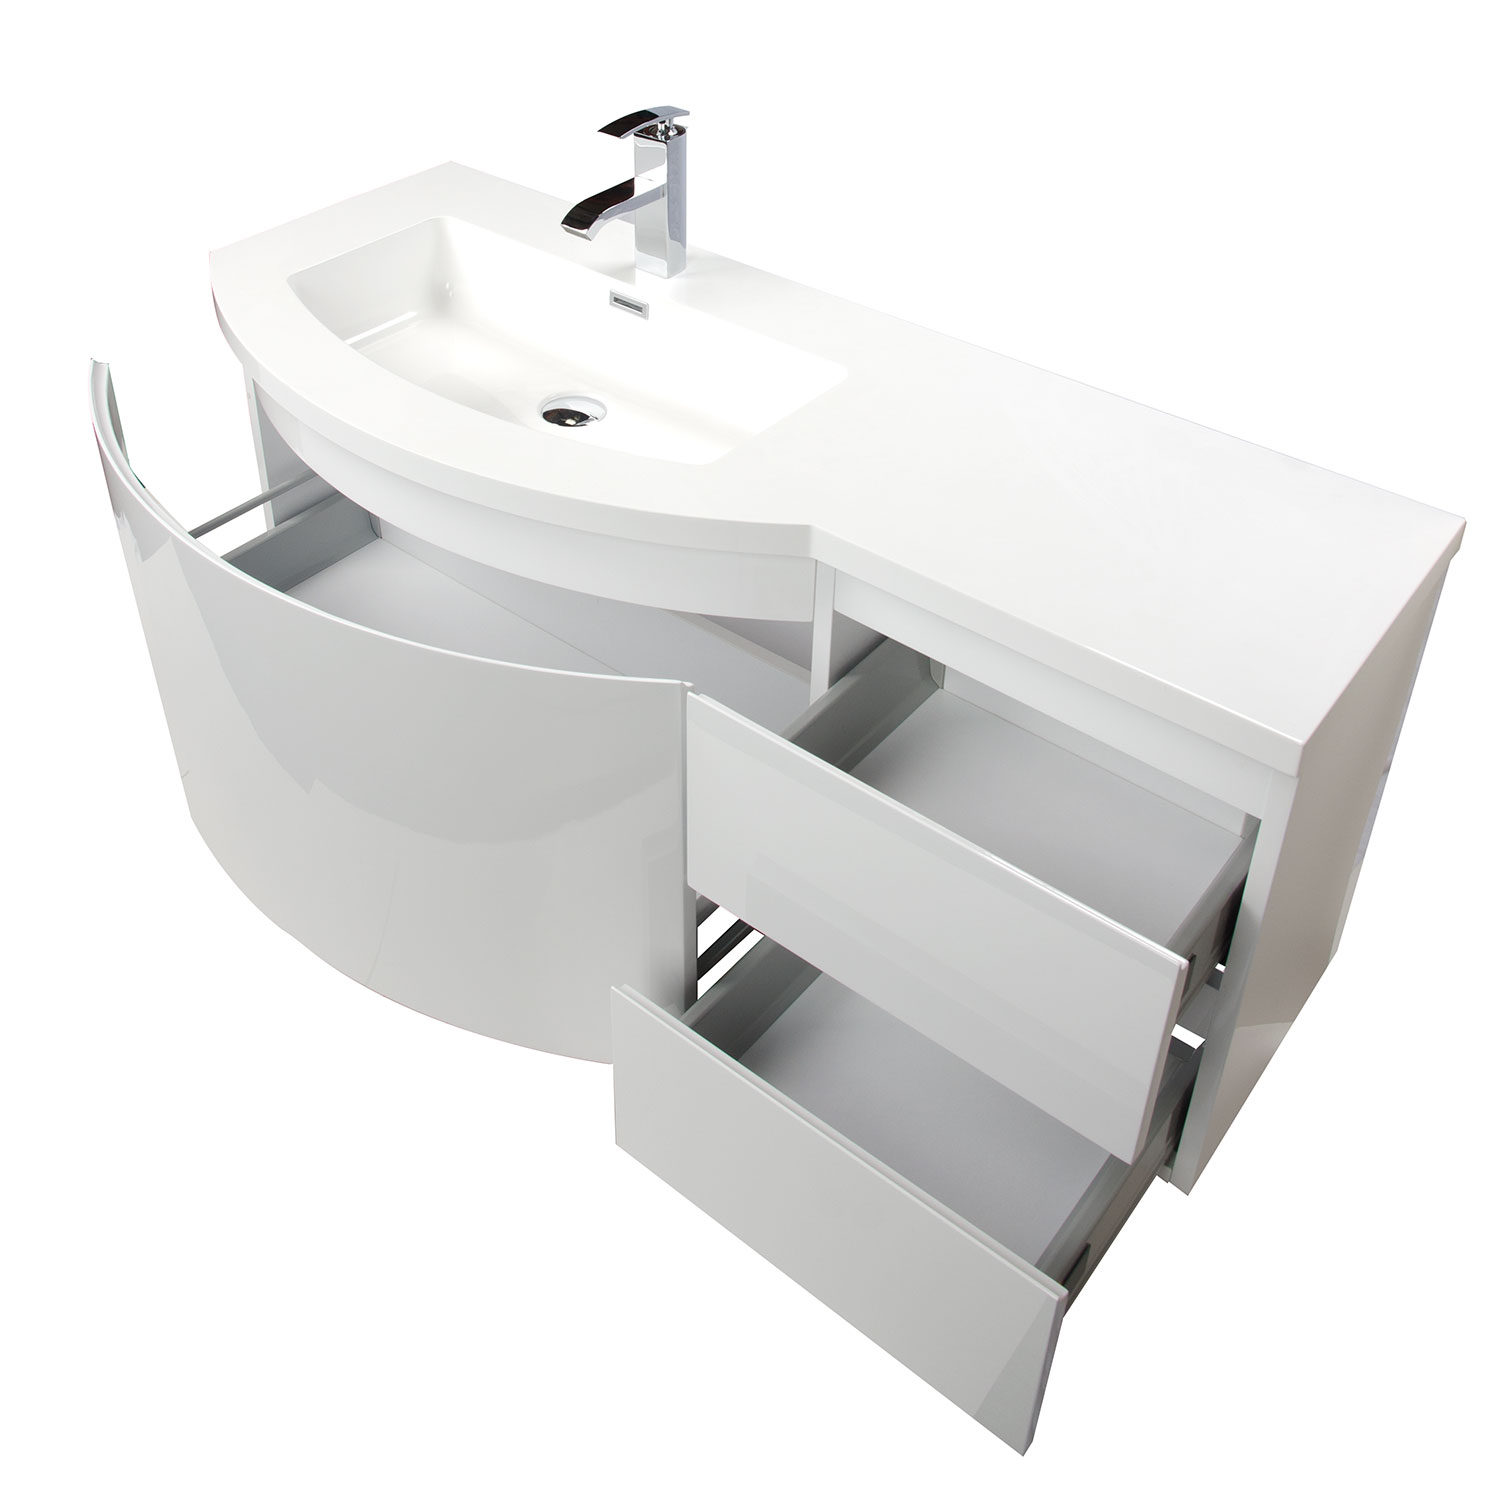 inch vanity design sinks sink vessel bathroom white stanton porcelain inspiring